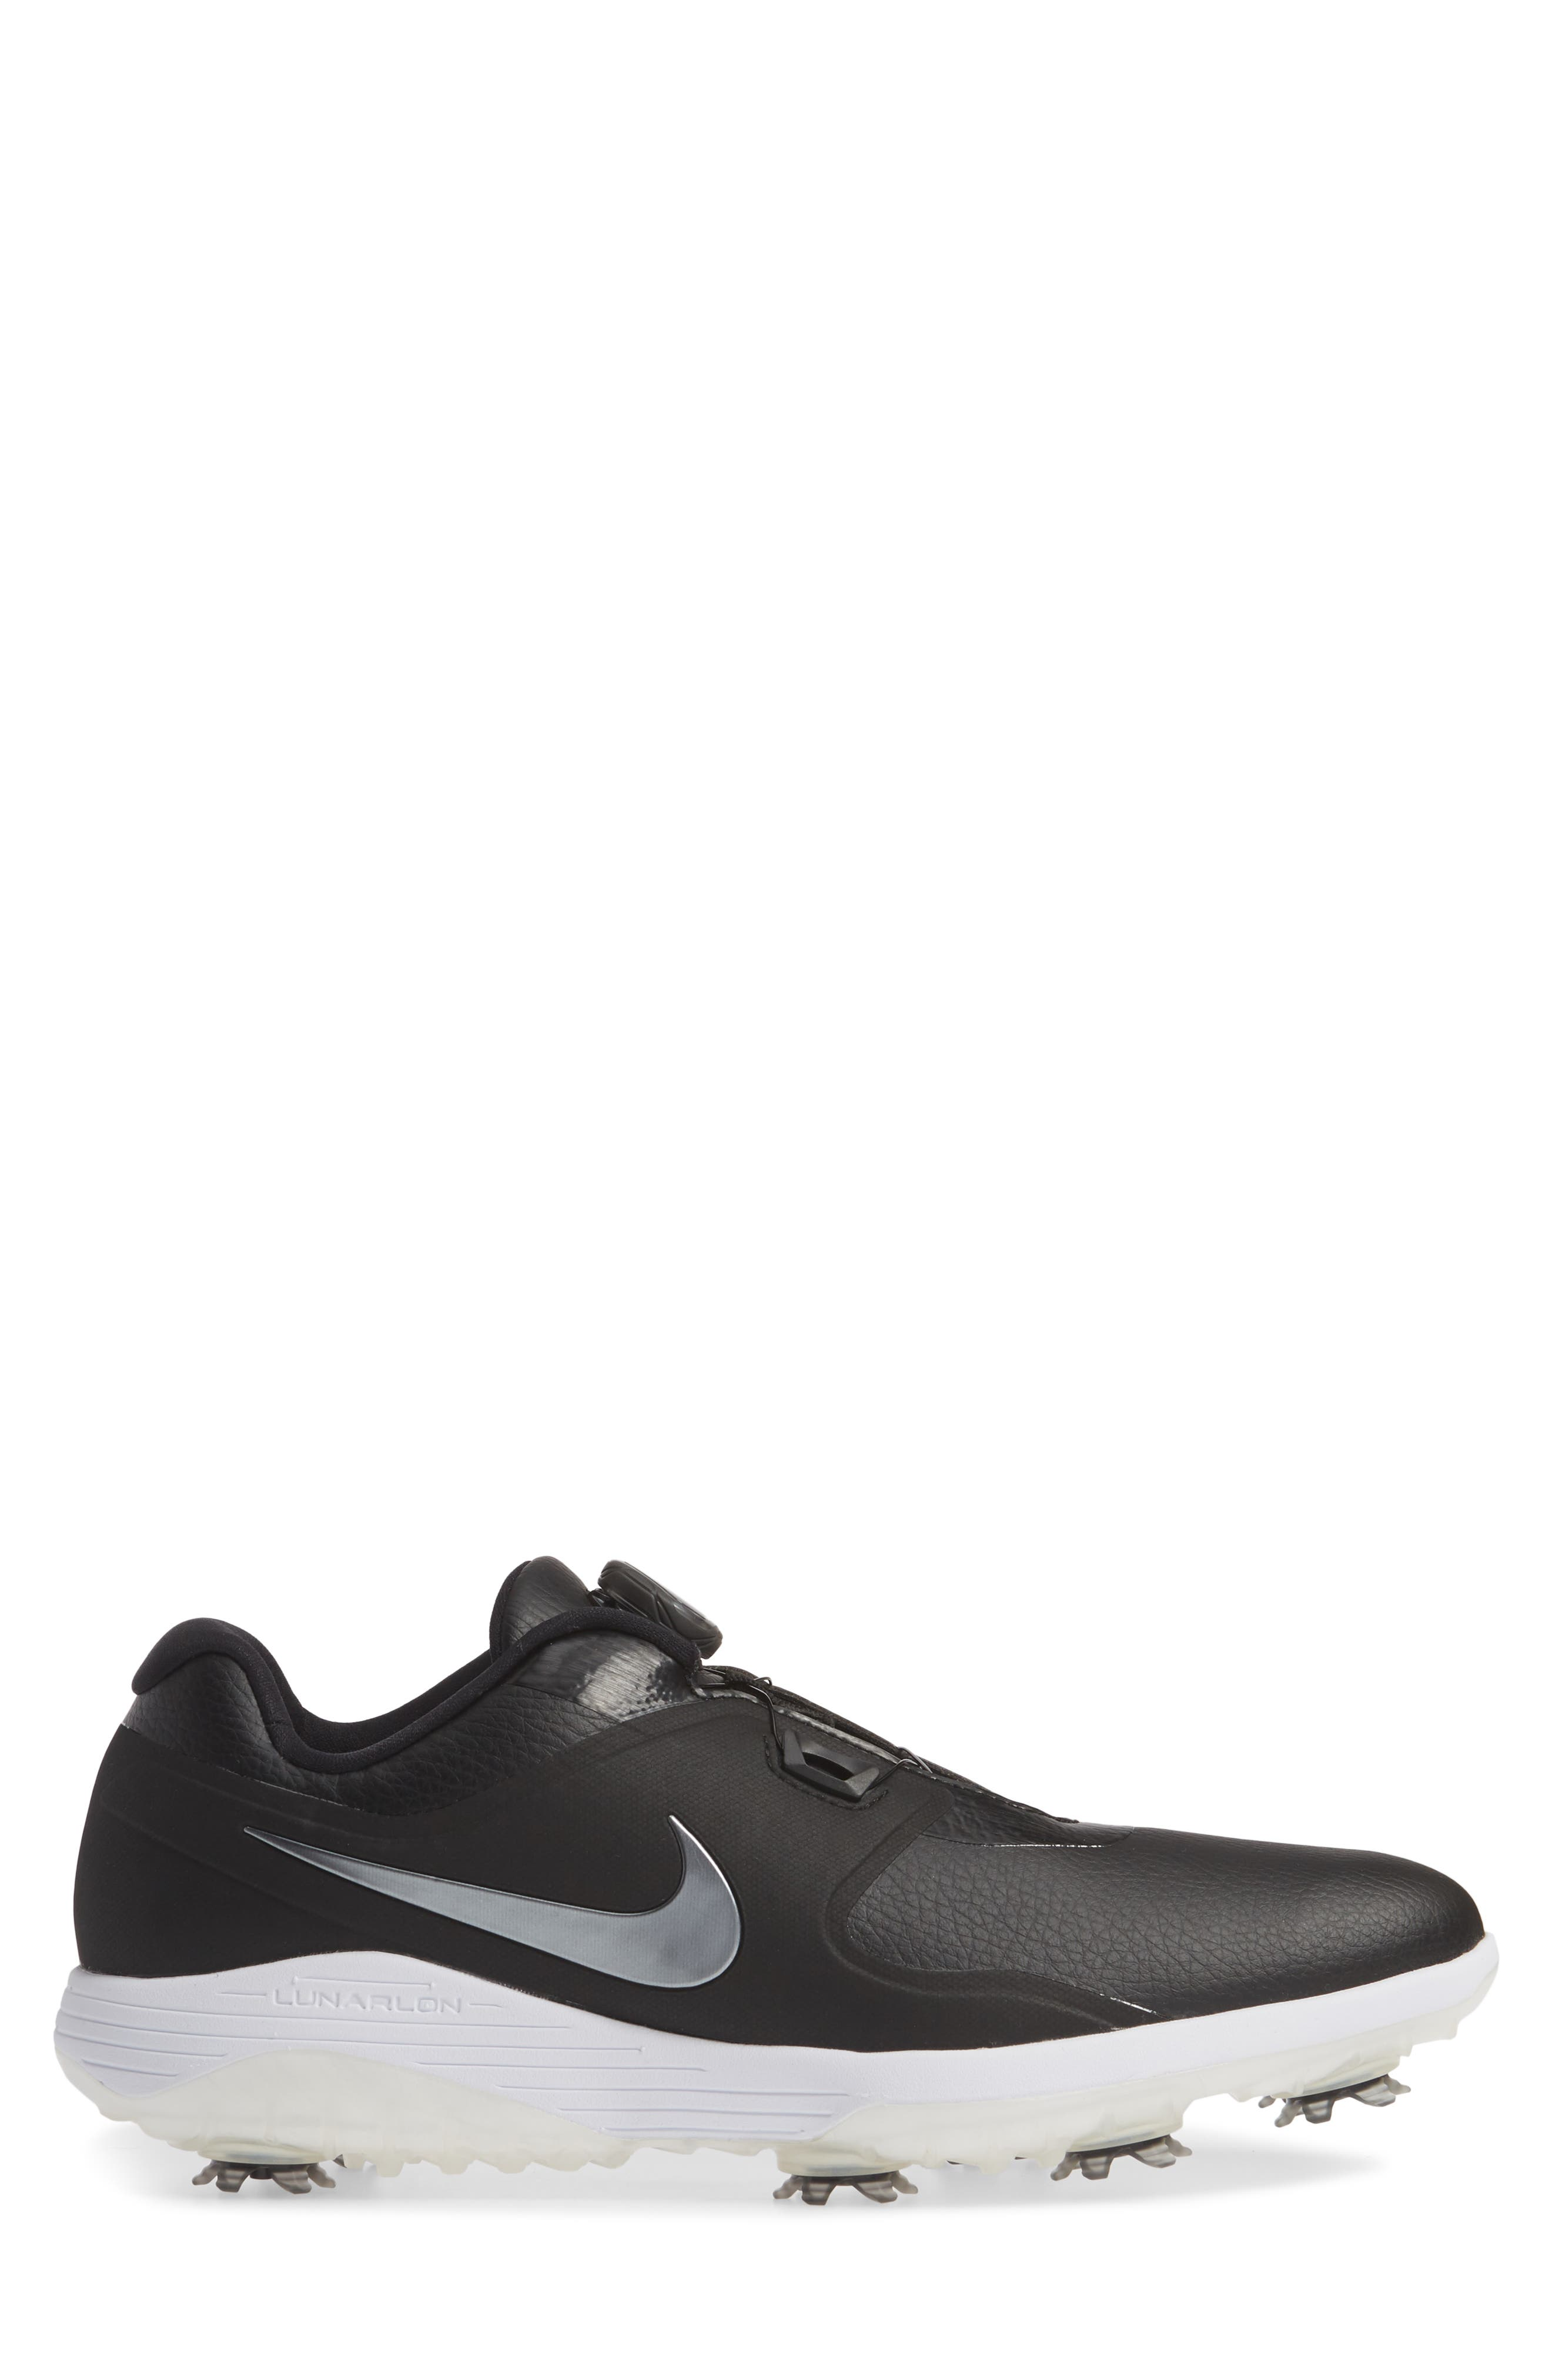 NIKE,                             Vapor Pro BOA Waterproof Golf Shoe,                             Alternate thumbnail 3, color,                             BLACK/ COOL GREY/ WHITE